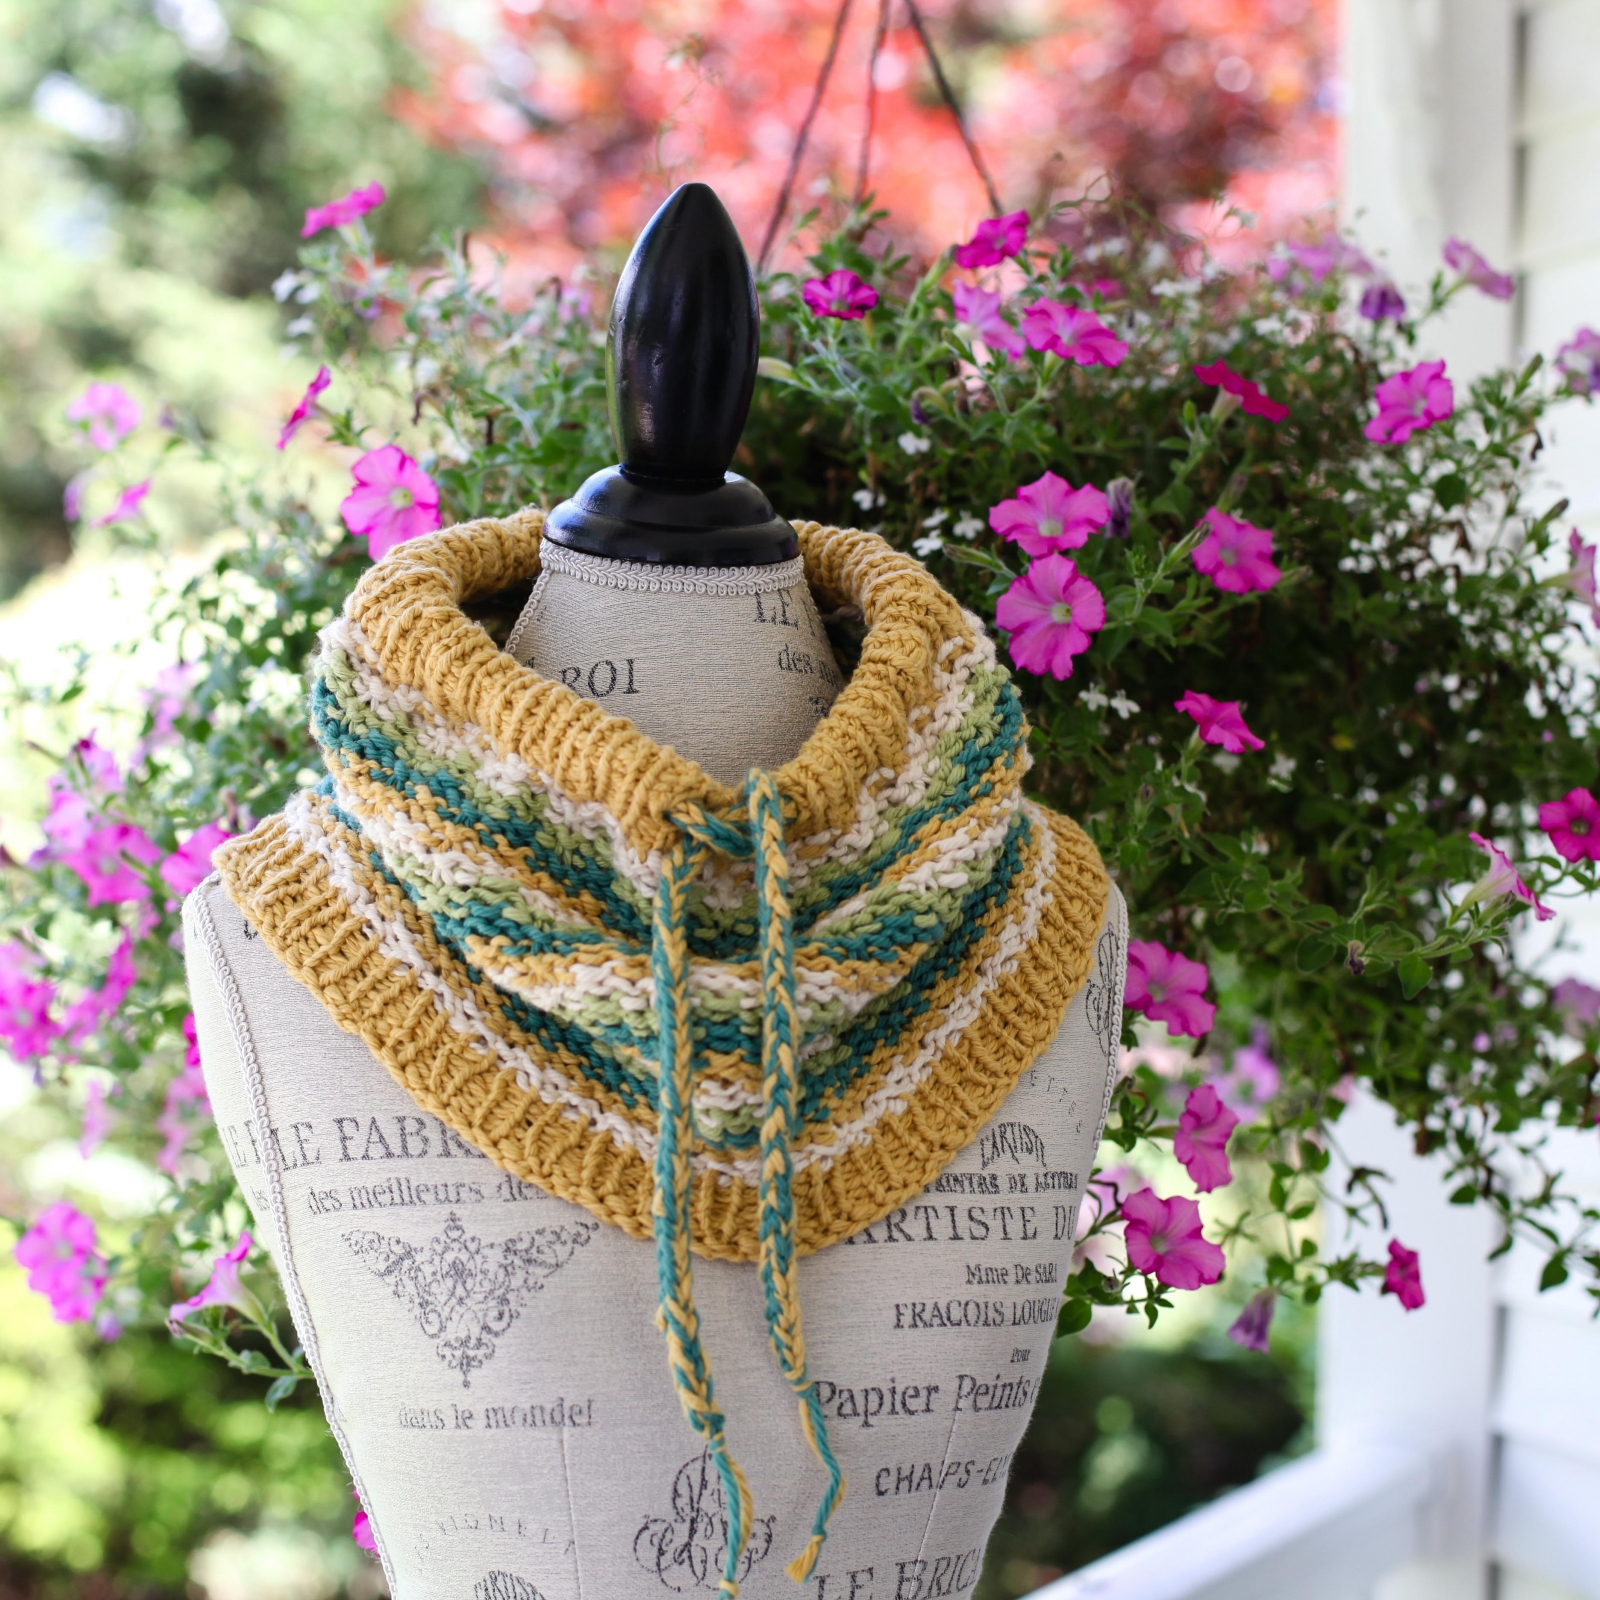 Cowl Knit Patterns Loom Knit Drawstring Cowl Pattern Cotton Neckwarmer With Easy Colorwork Wave Pattern 4 Season Loom Knitting Pattern Pdf